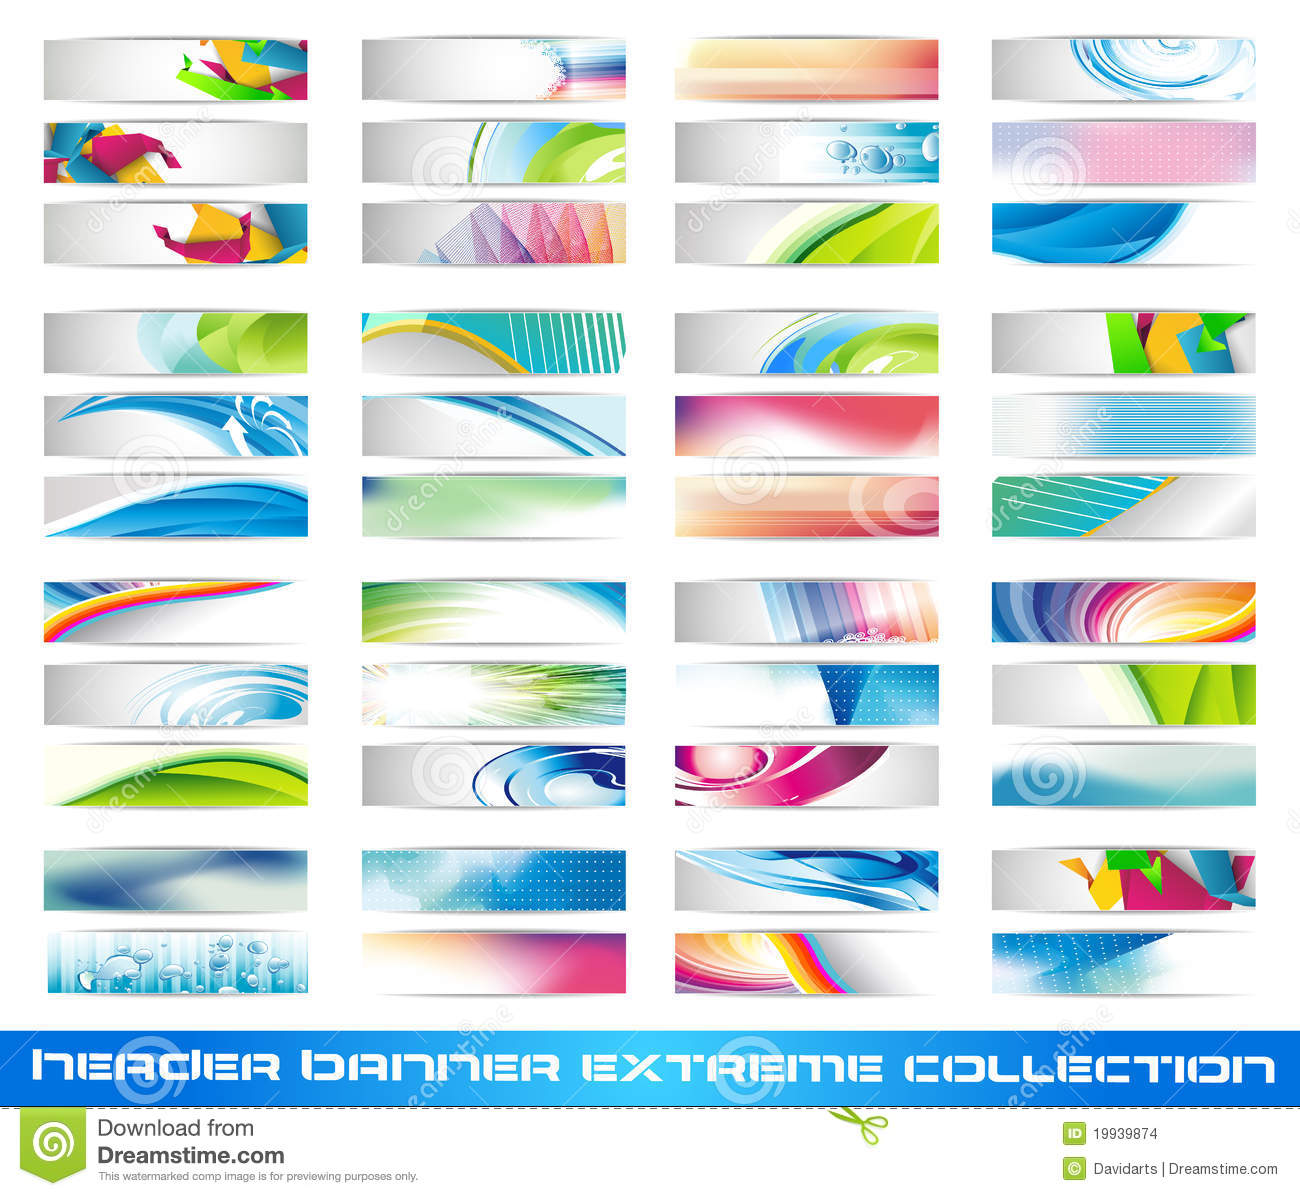 Download Header Banner Extreme Collection Stock Vector - Illustration of colorful, abstract: 19939874